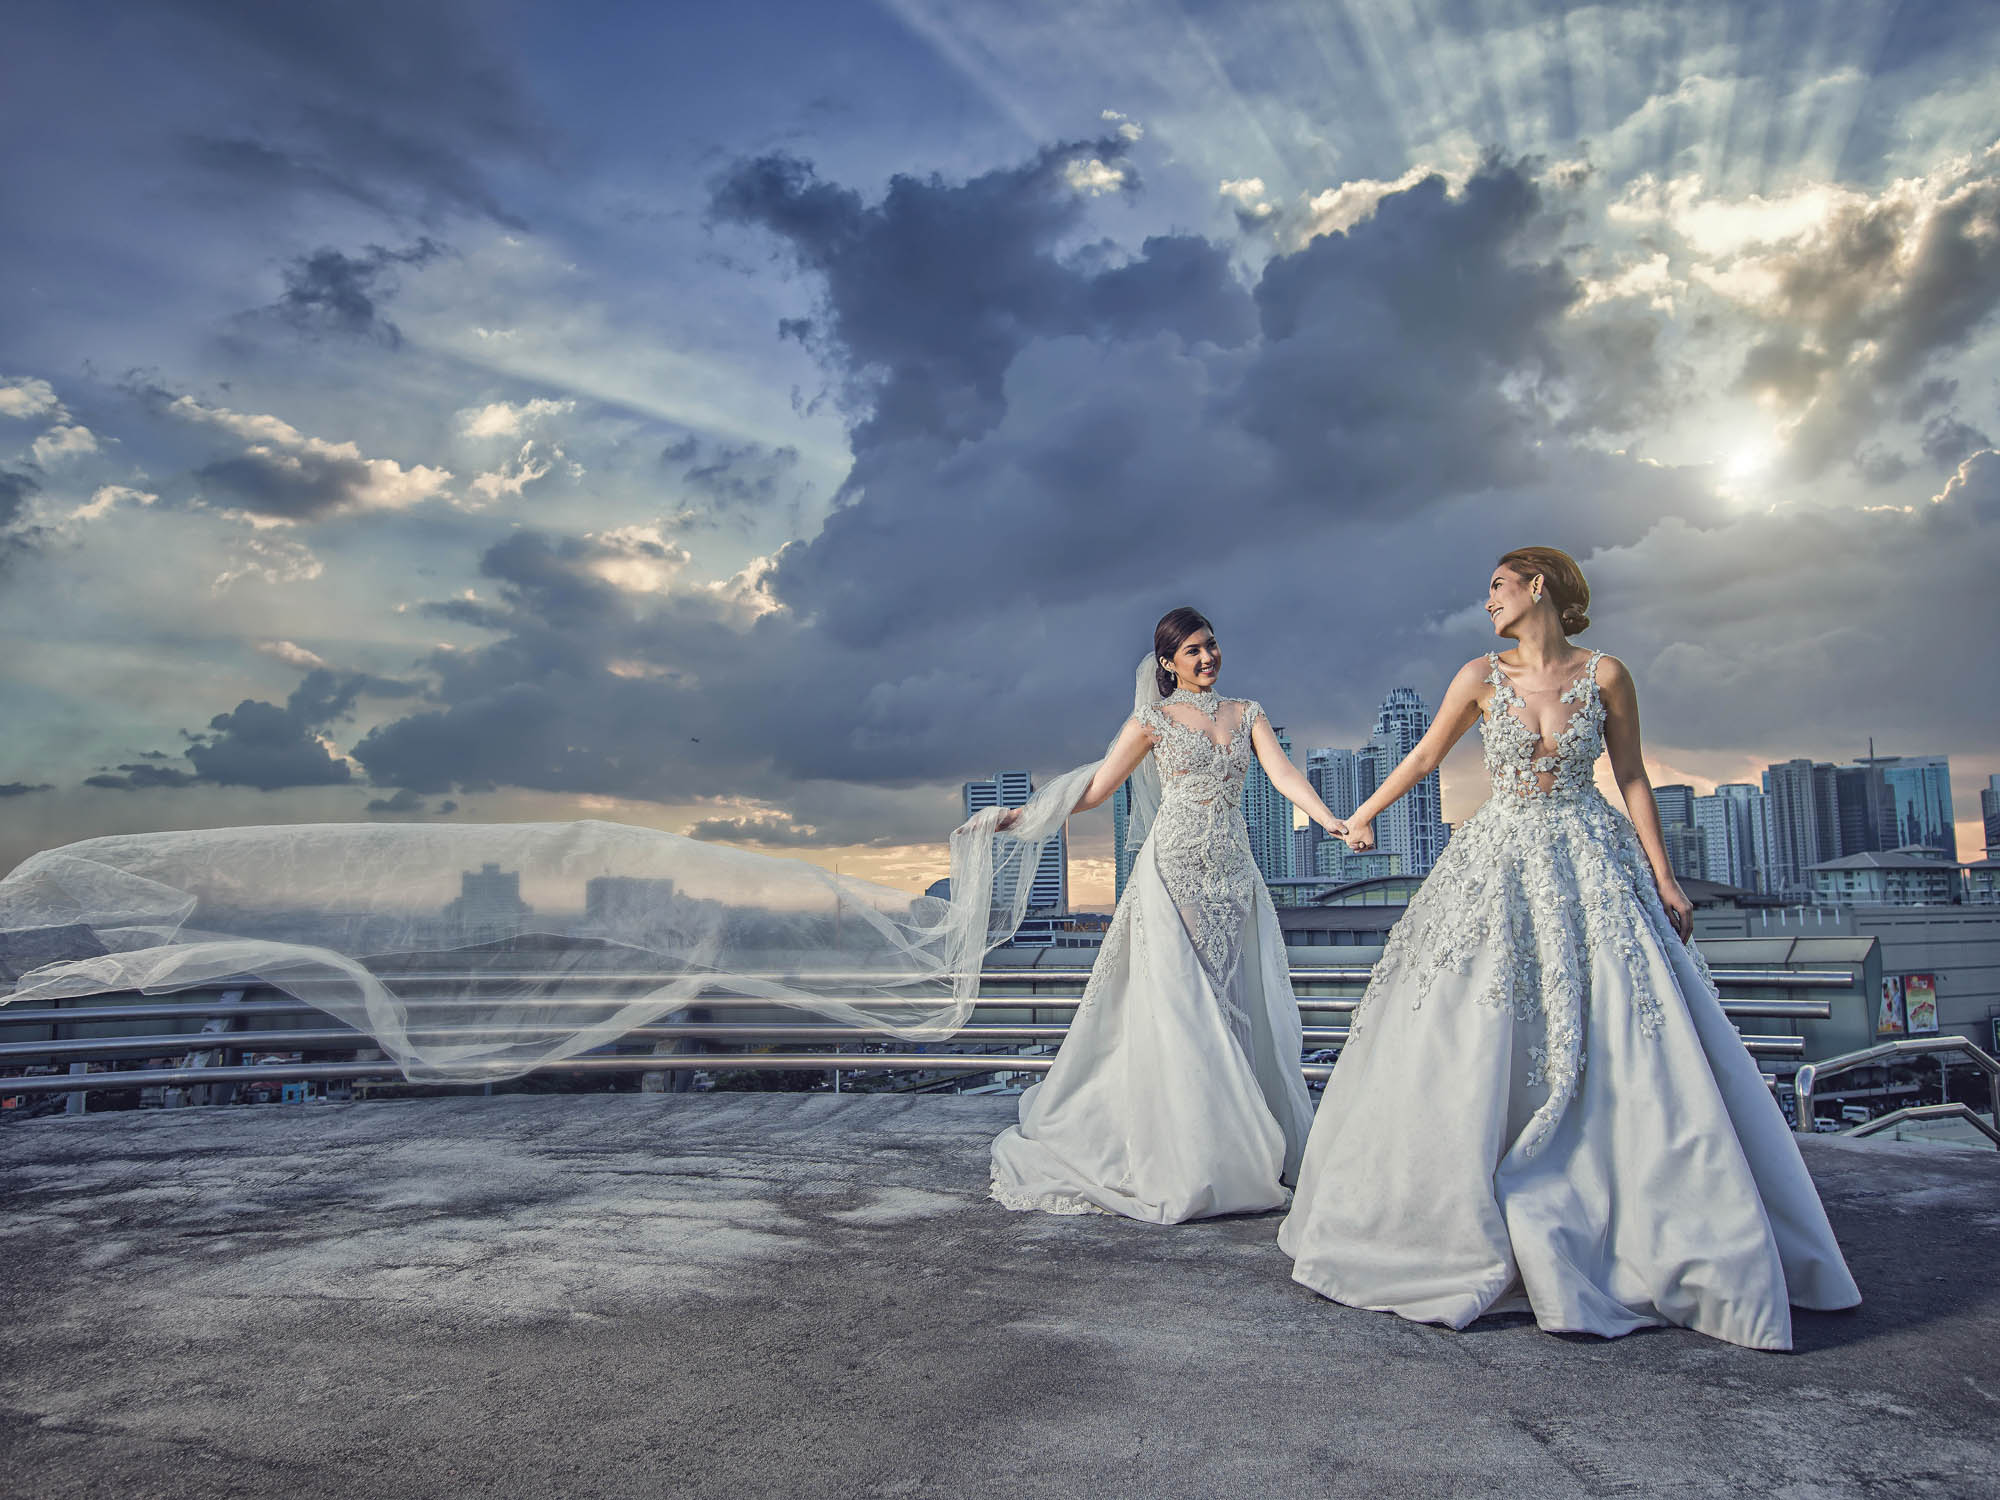 Brides in dramatic veil shot, by CM Leung